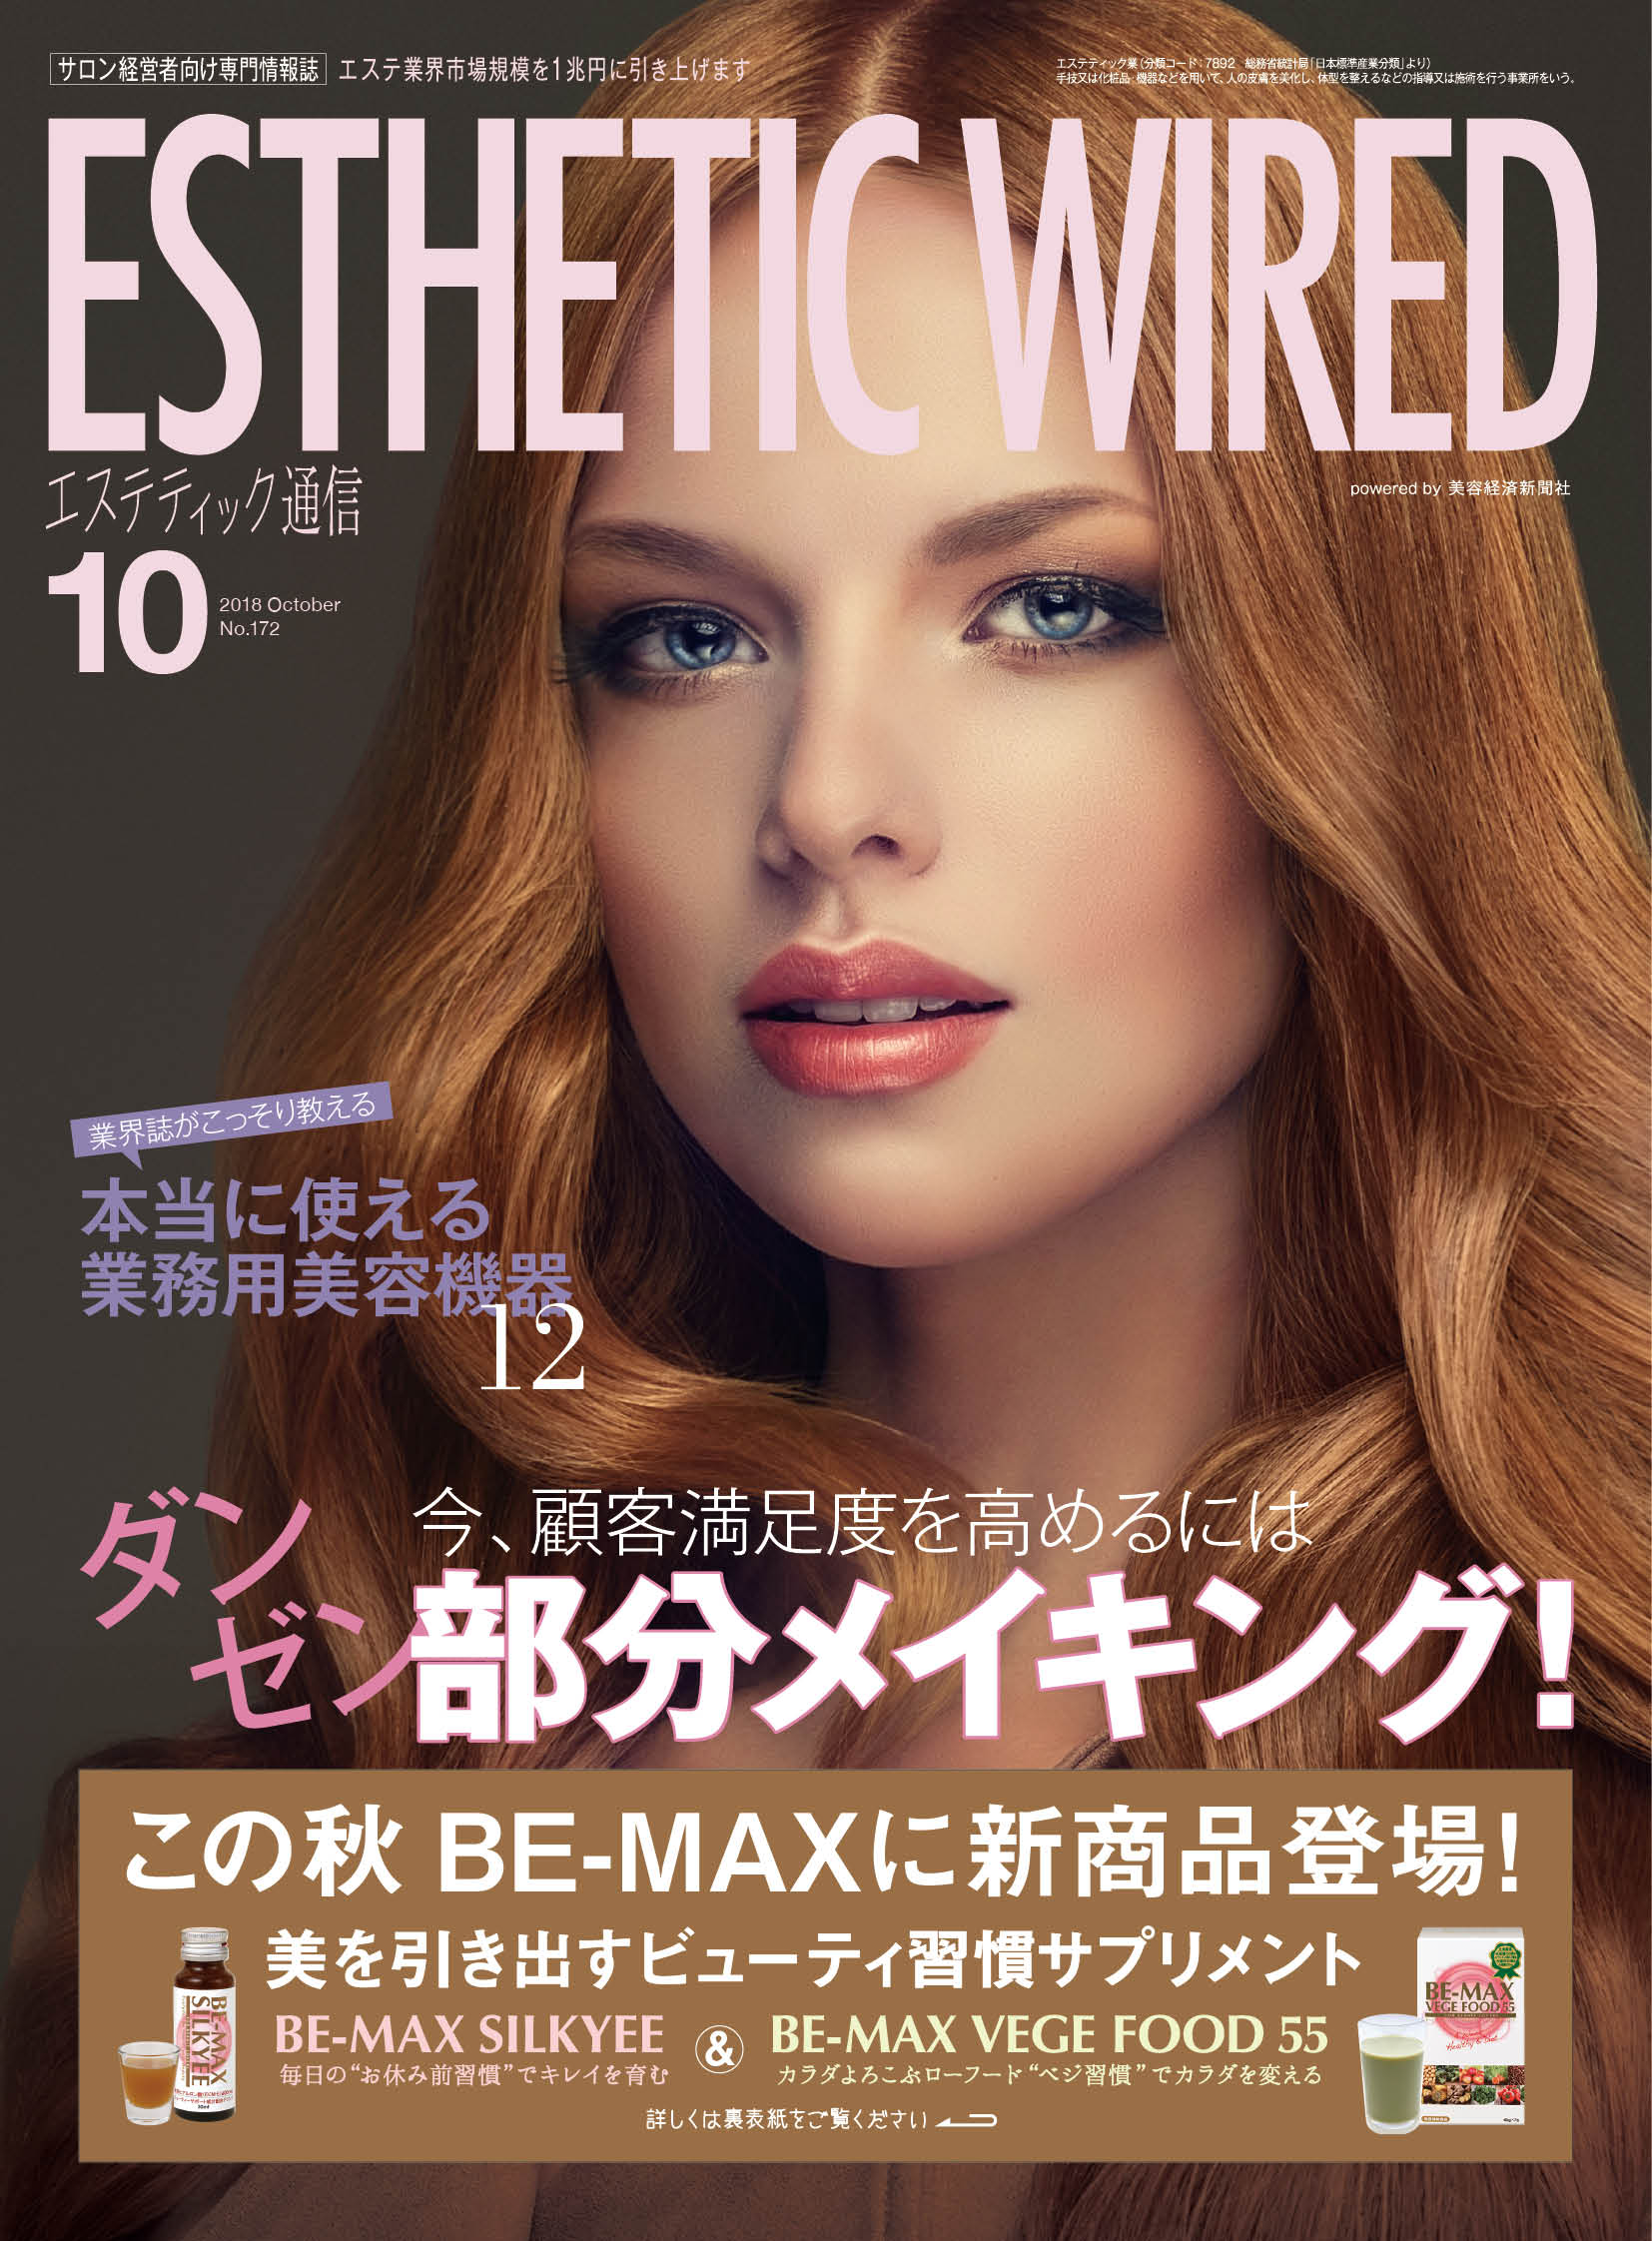 ESTHETIC WIRED 2018/10掲載